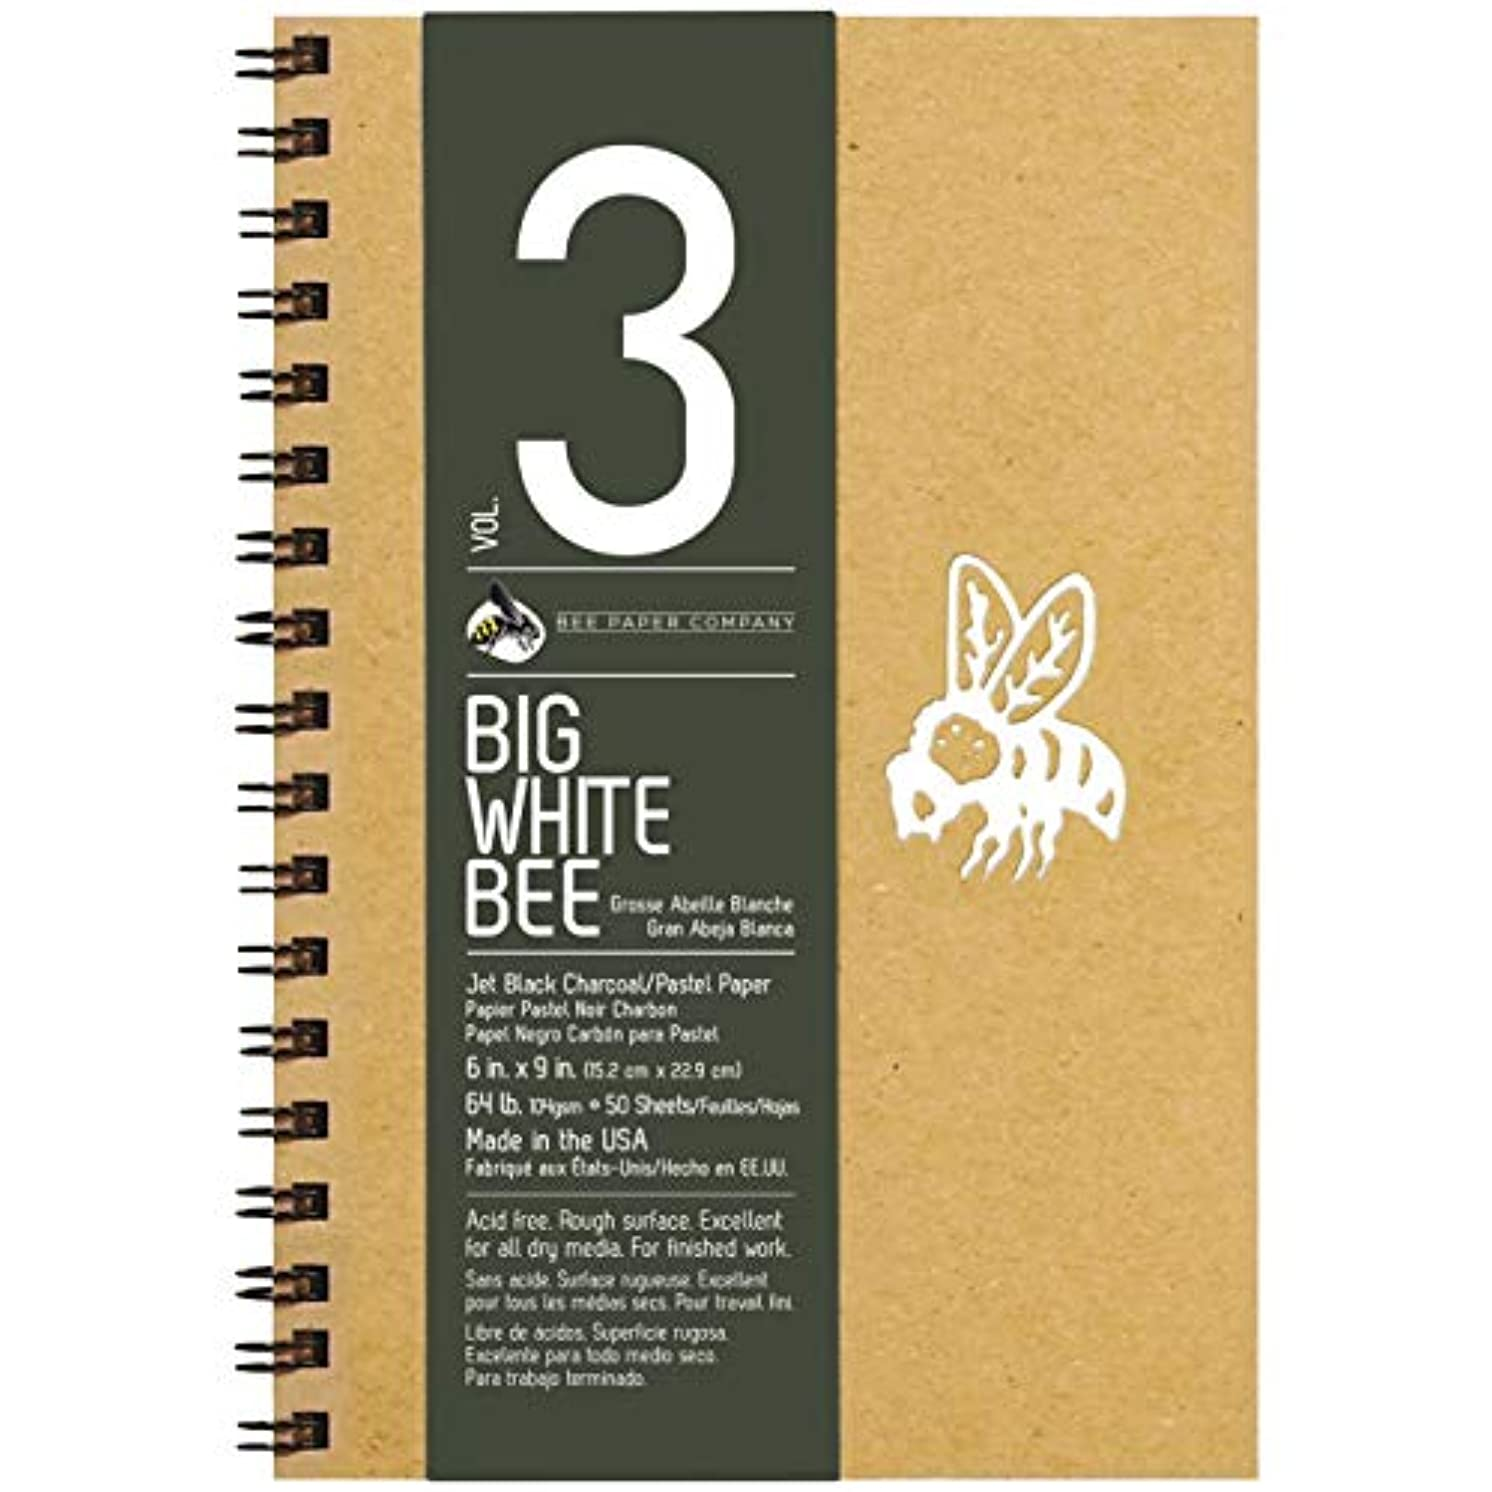 Bee Paper Company BEE-204CB50-609 Big White Bee Drawing Pad, 9 by 6-Inch, Black Charcoal